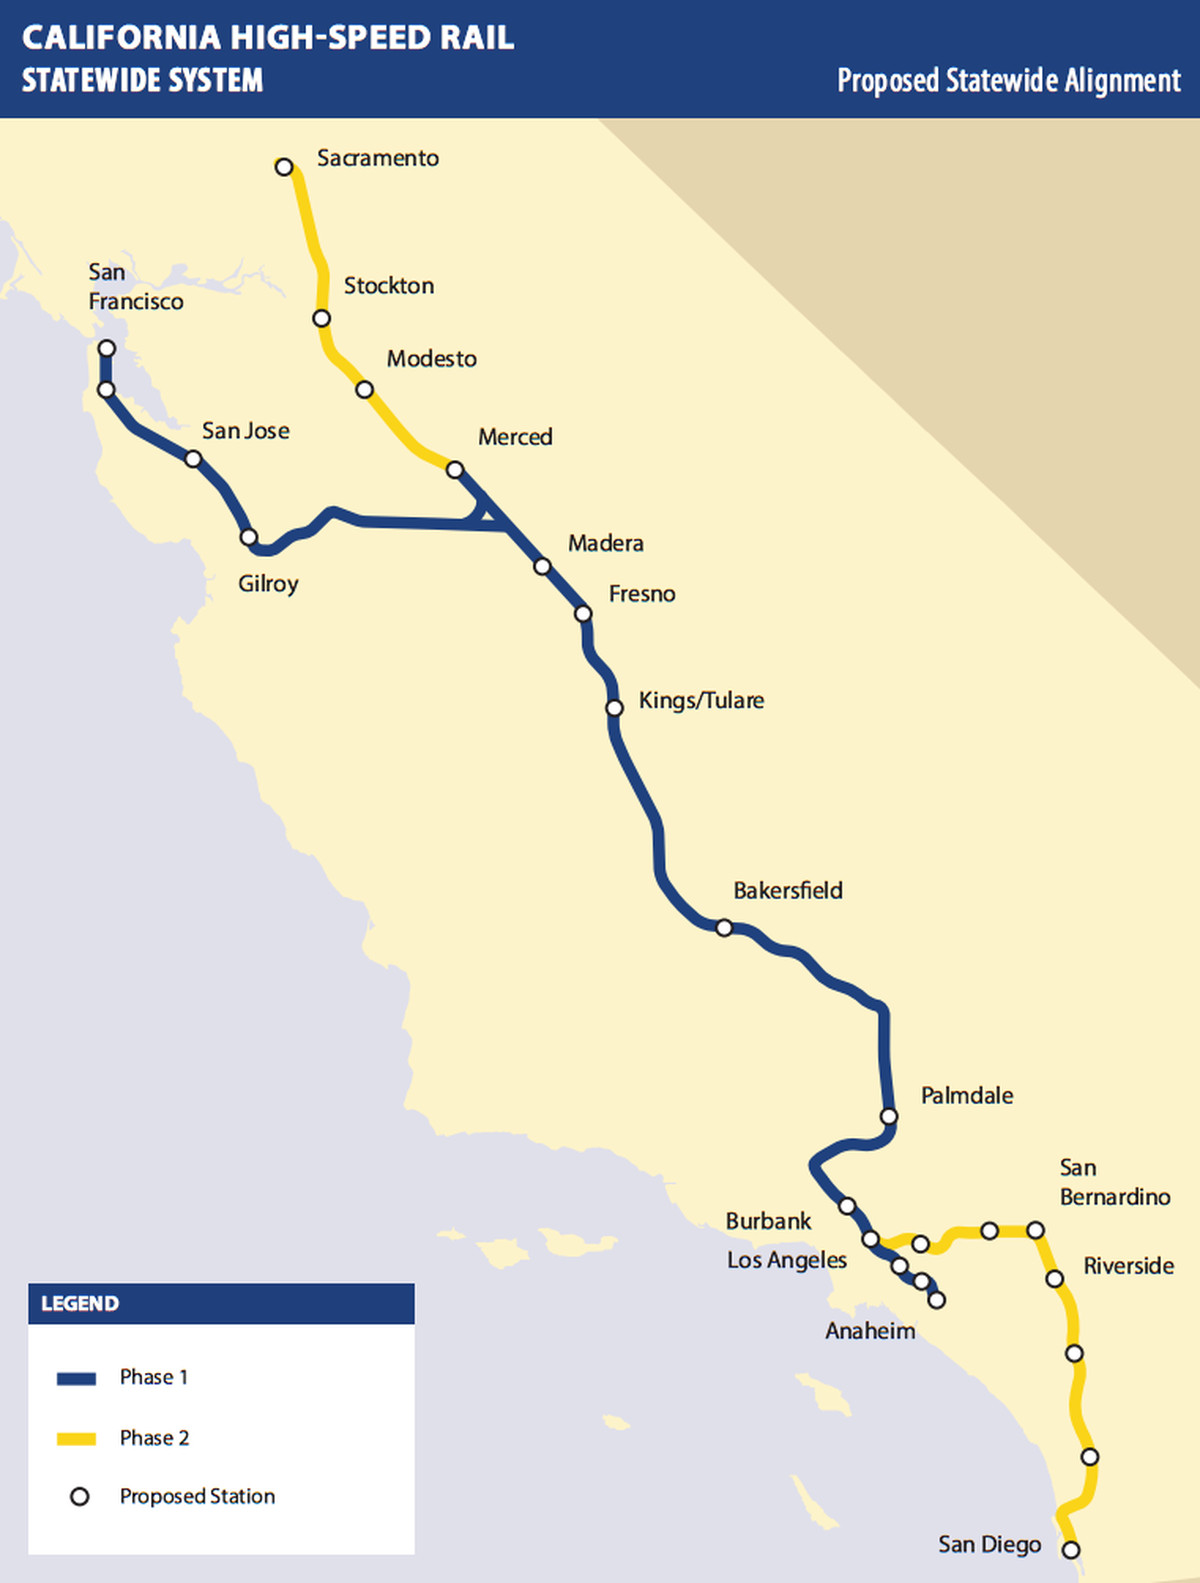 ca high speed rail The california high-speed rail authority (authority) is responsible for planning, designing, building and operation of the first high-speed rail system in the nation.